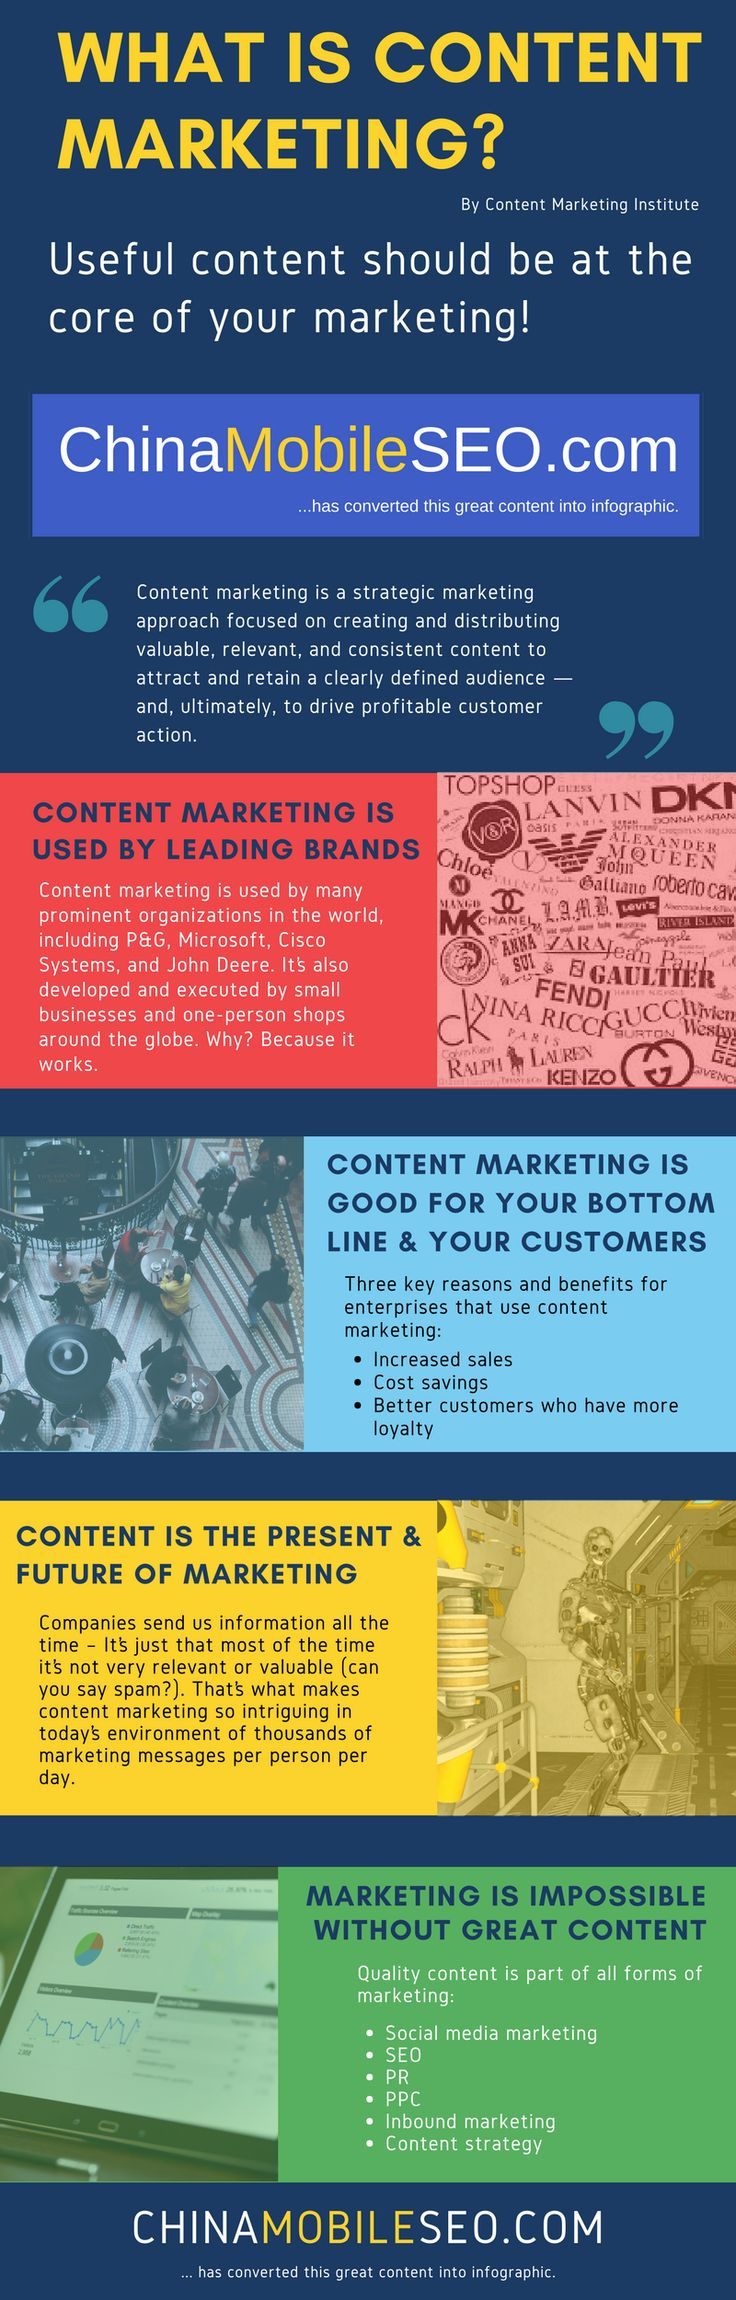 content marketing | what is content marketing | brand marketing | brand management | Content Marketing Institute | #contentmarketinginstitute.com | ChinaMobileSEO | China Mobile SEO | social media marketing | SEO | PPC |  Inbound Marketing | PR | content strategy | customer loyalty | marketing strategy #mobilemarketingstrategy